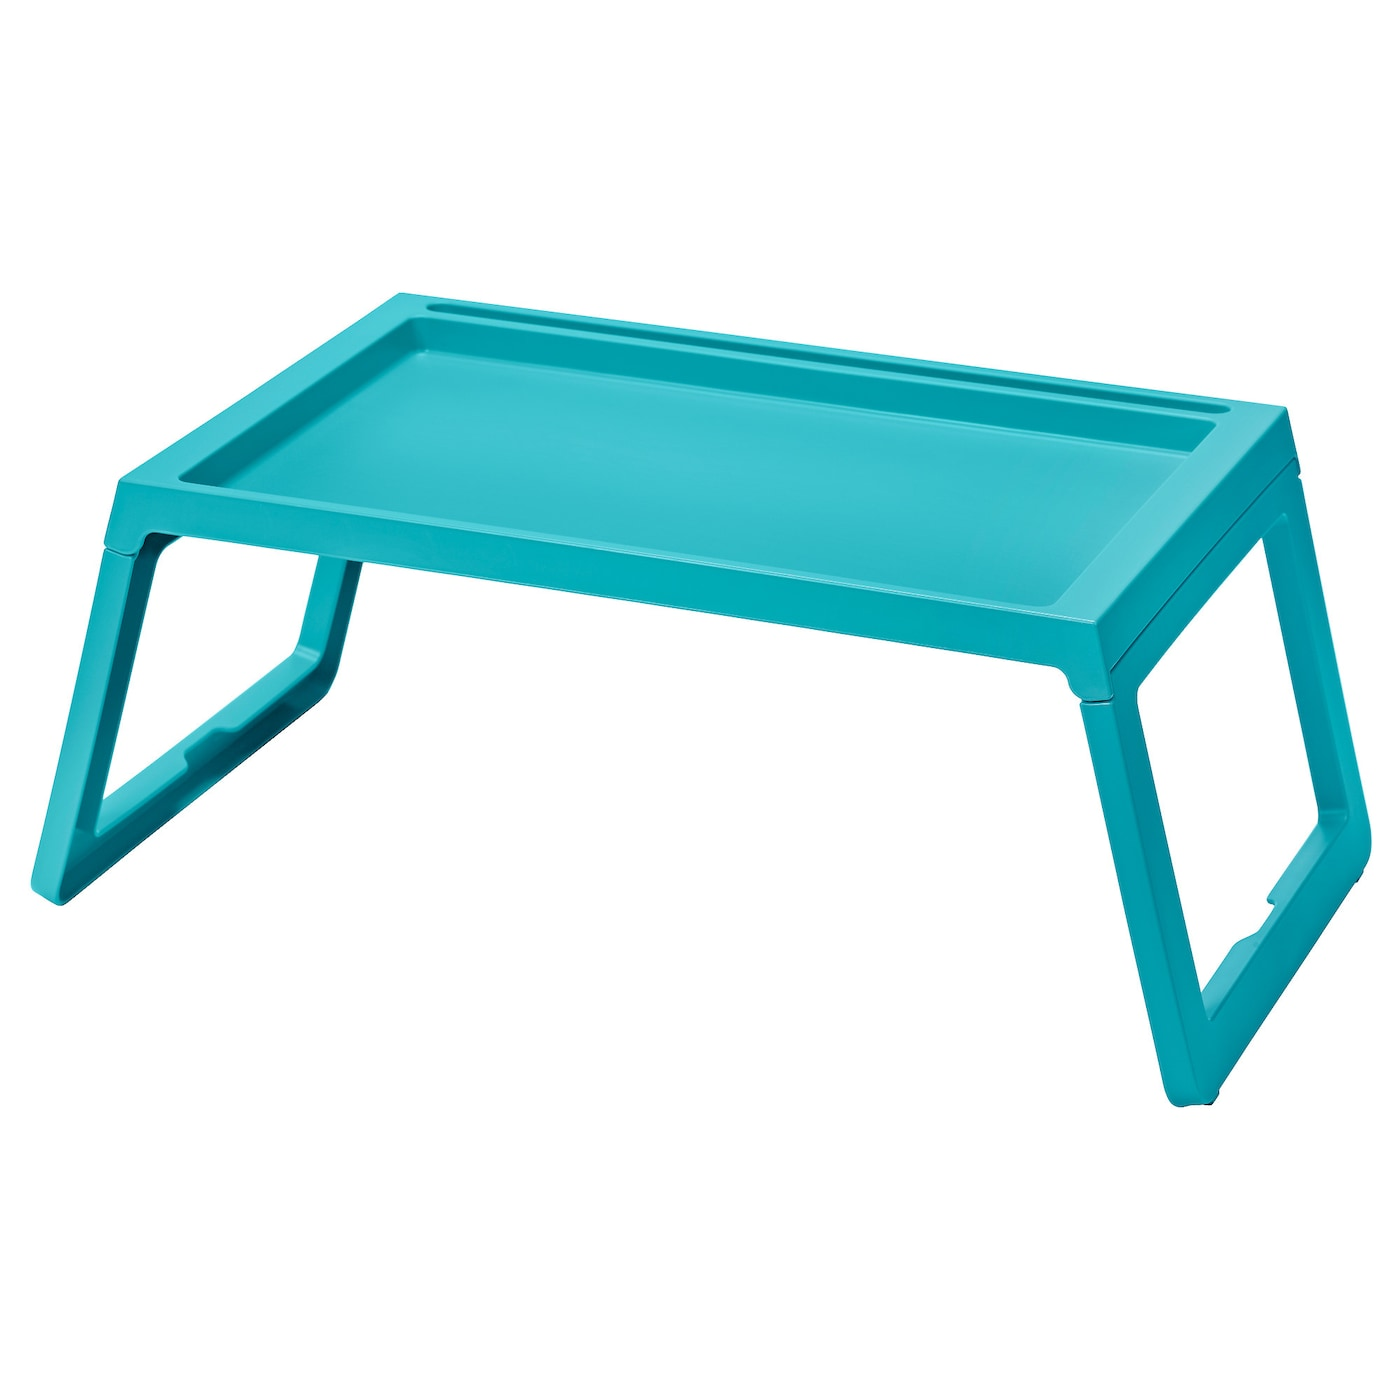 IKEA KLIPSK Bed Tray Foldable Legs Make The Bed Tray Easy To Store Without  Taking Up